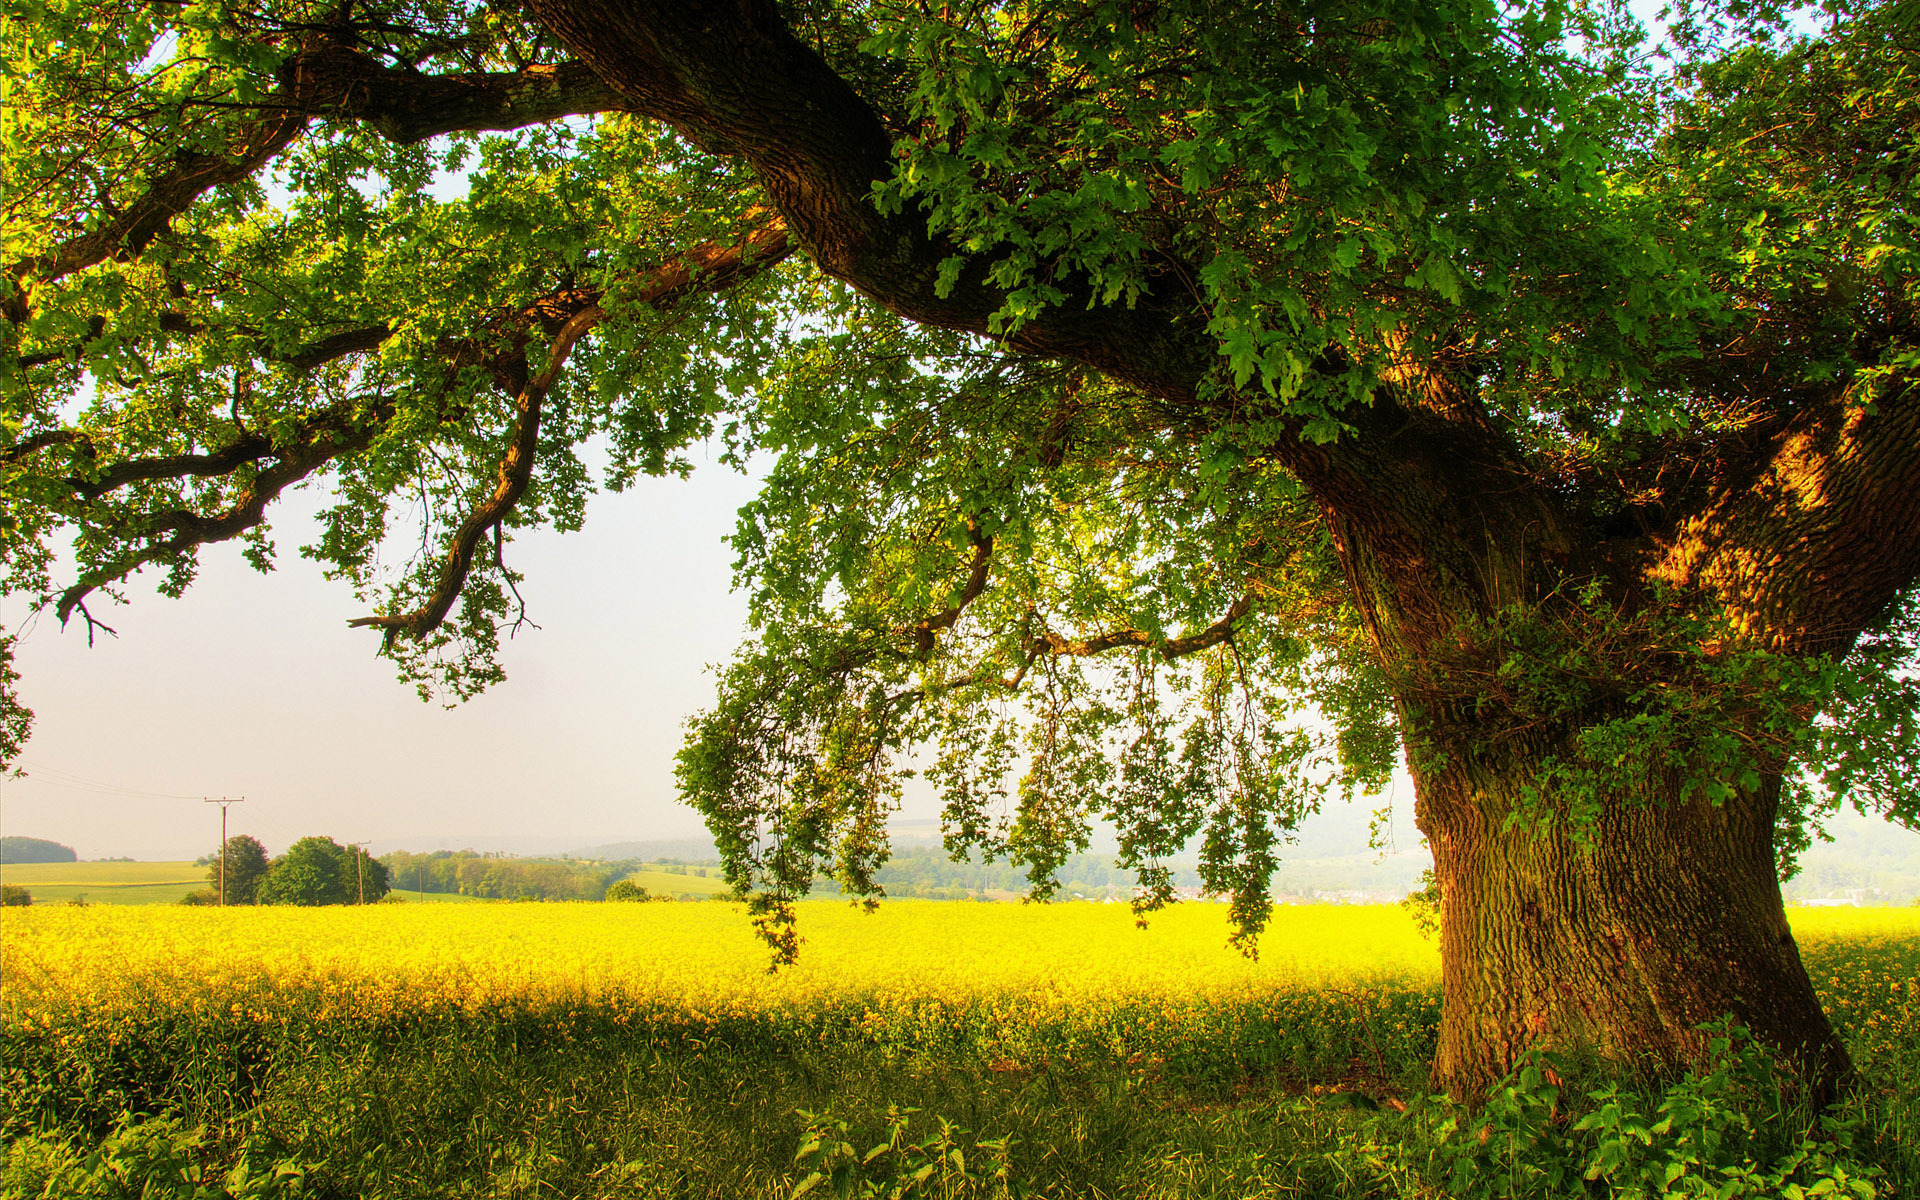 oak-tree-nature-hd-wallpaper-1920x1200-9606